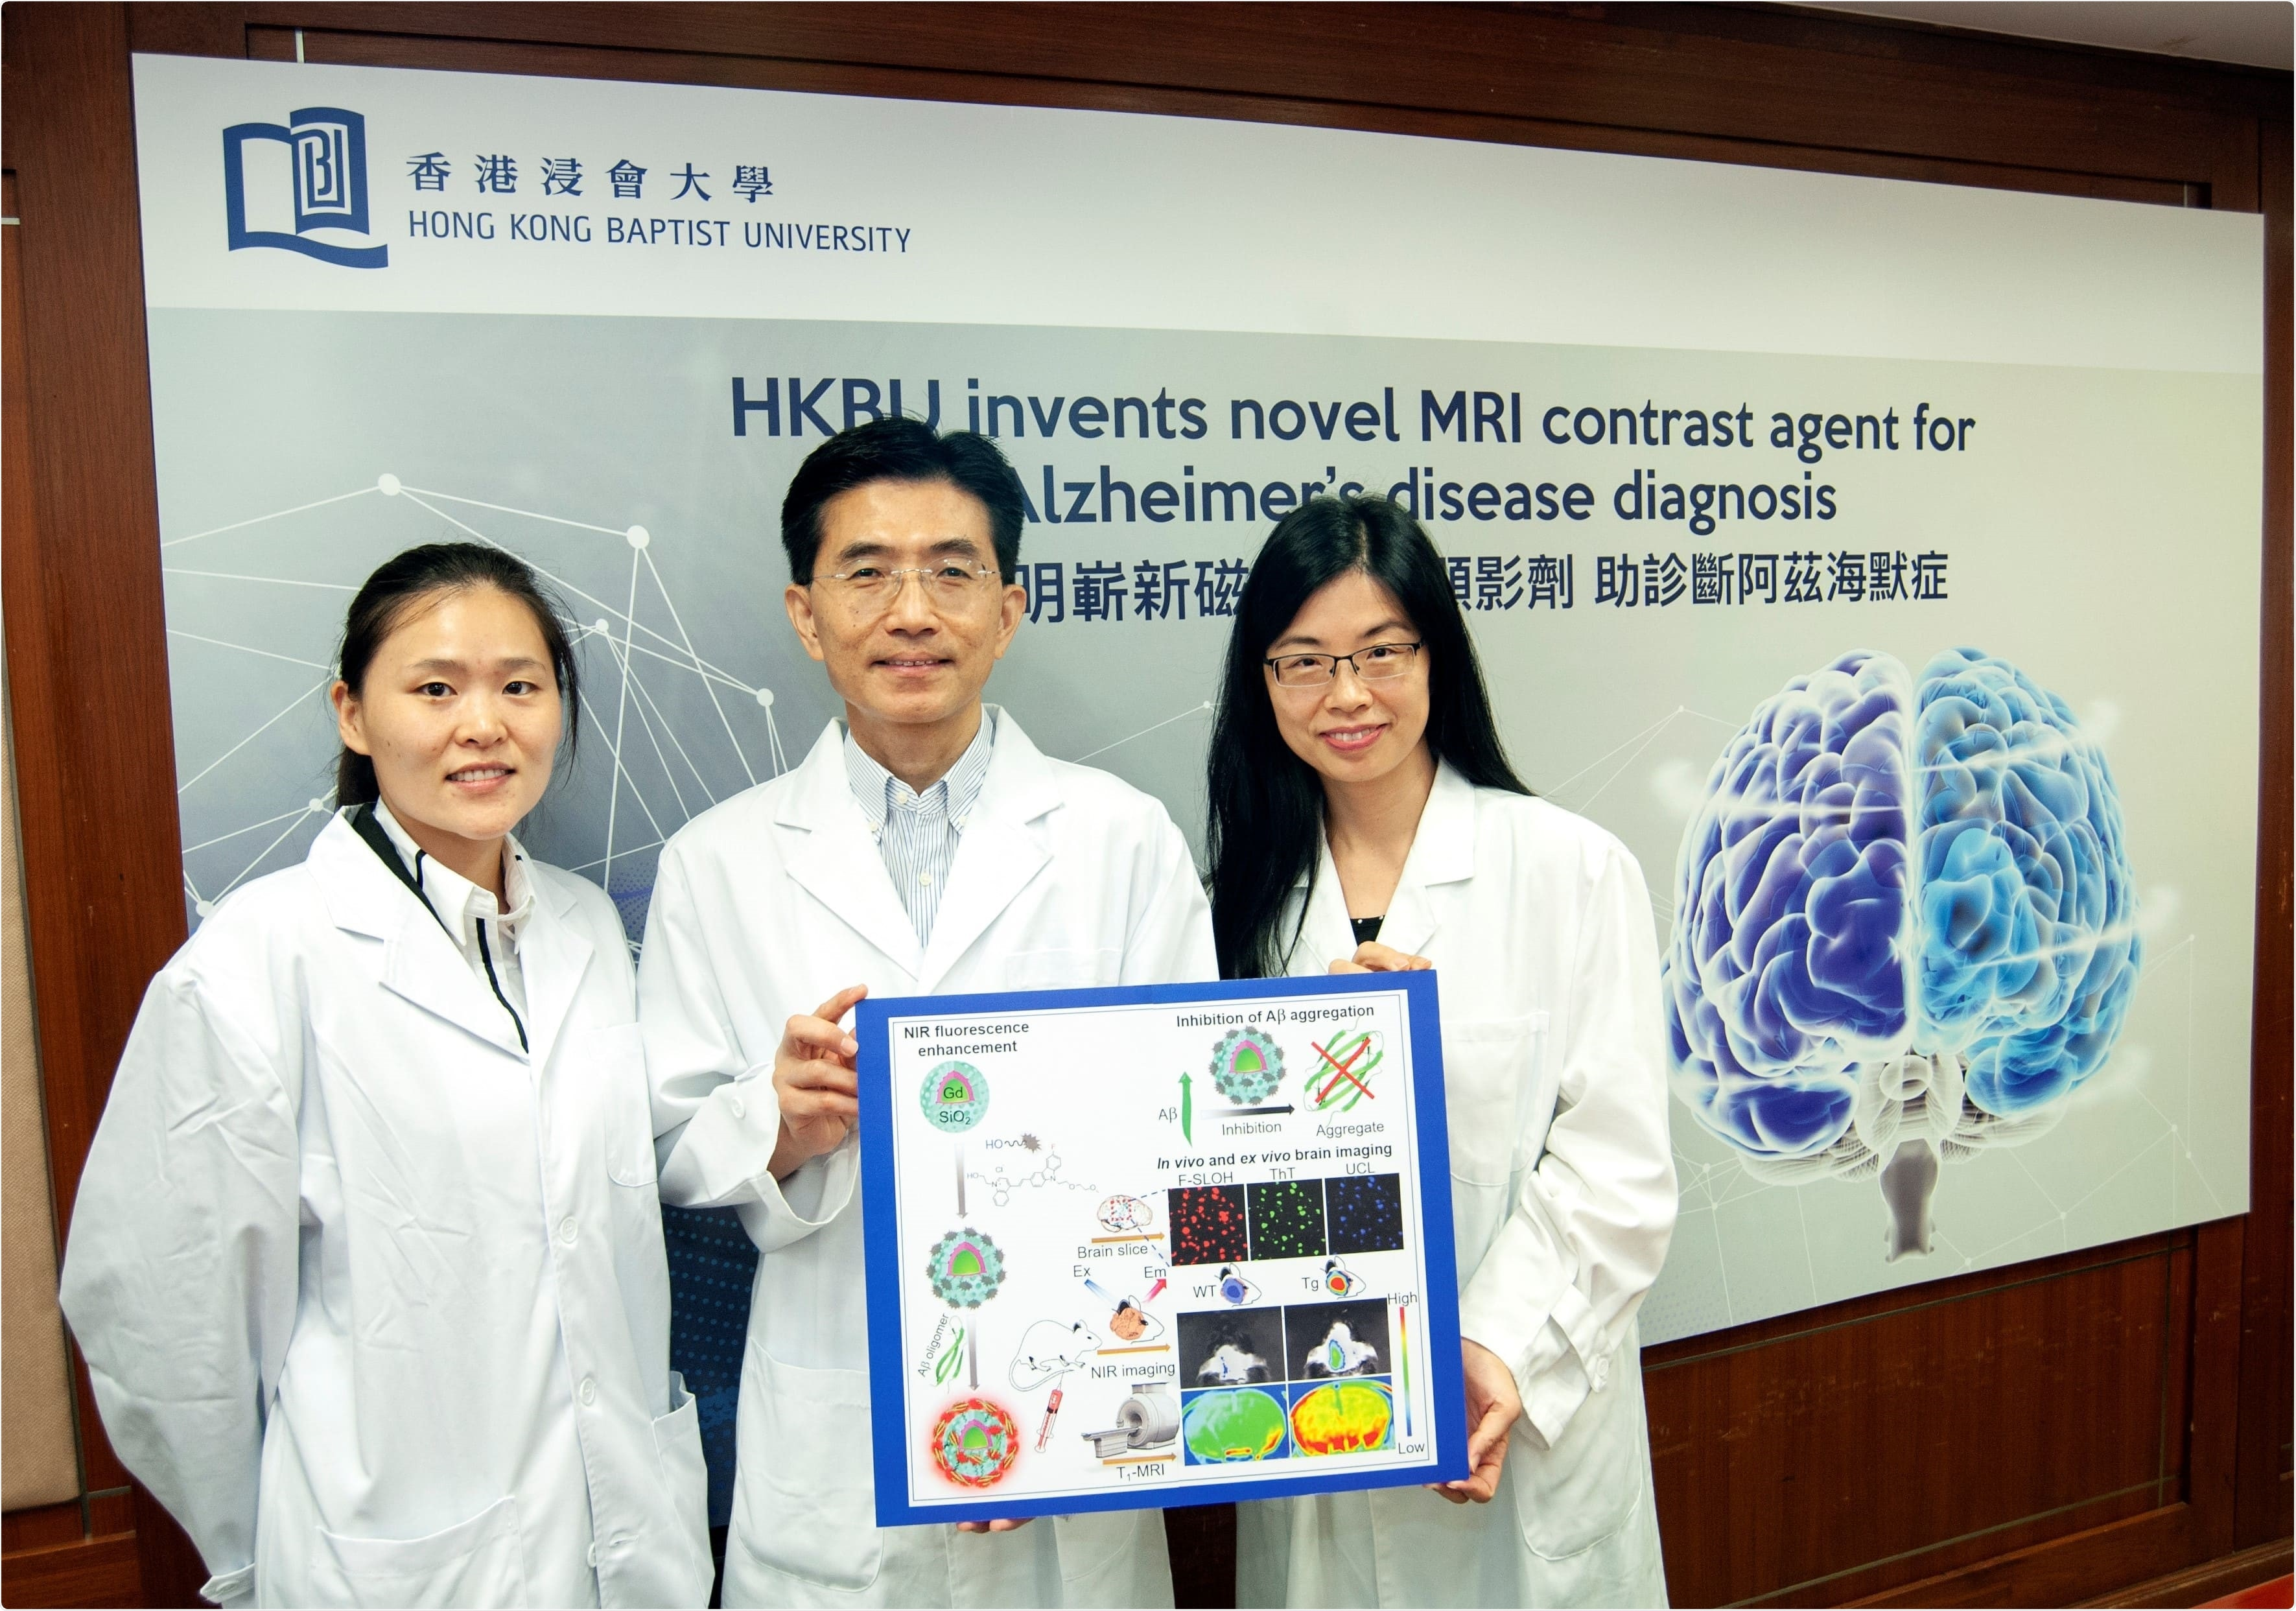 Novel MRI contrast agent offers hope for early detection of Alzheimer's disease